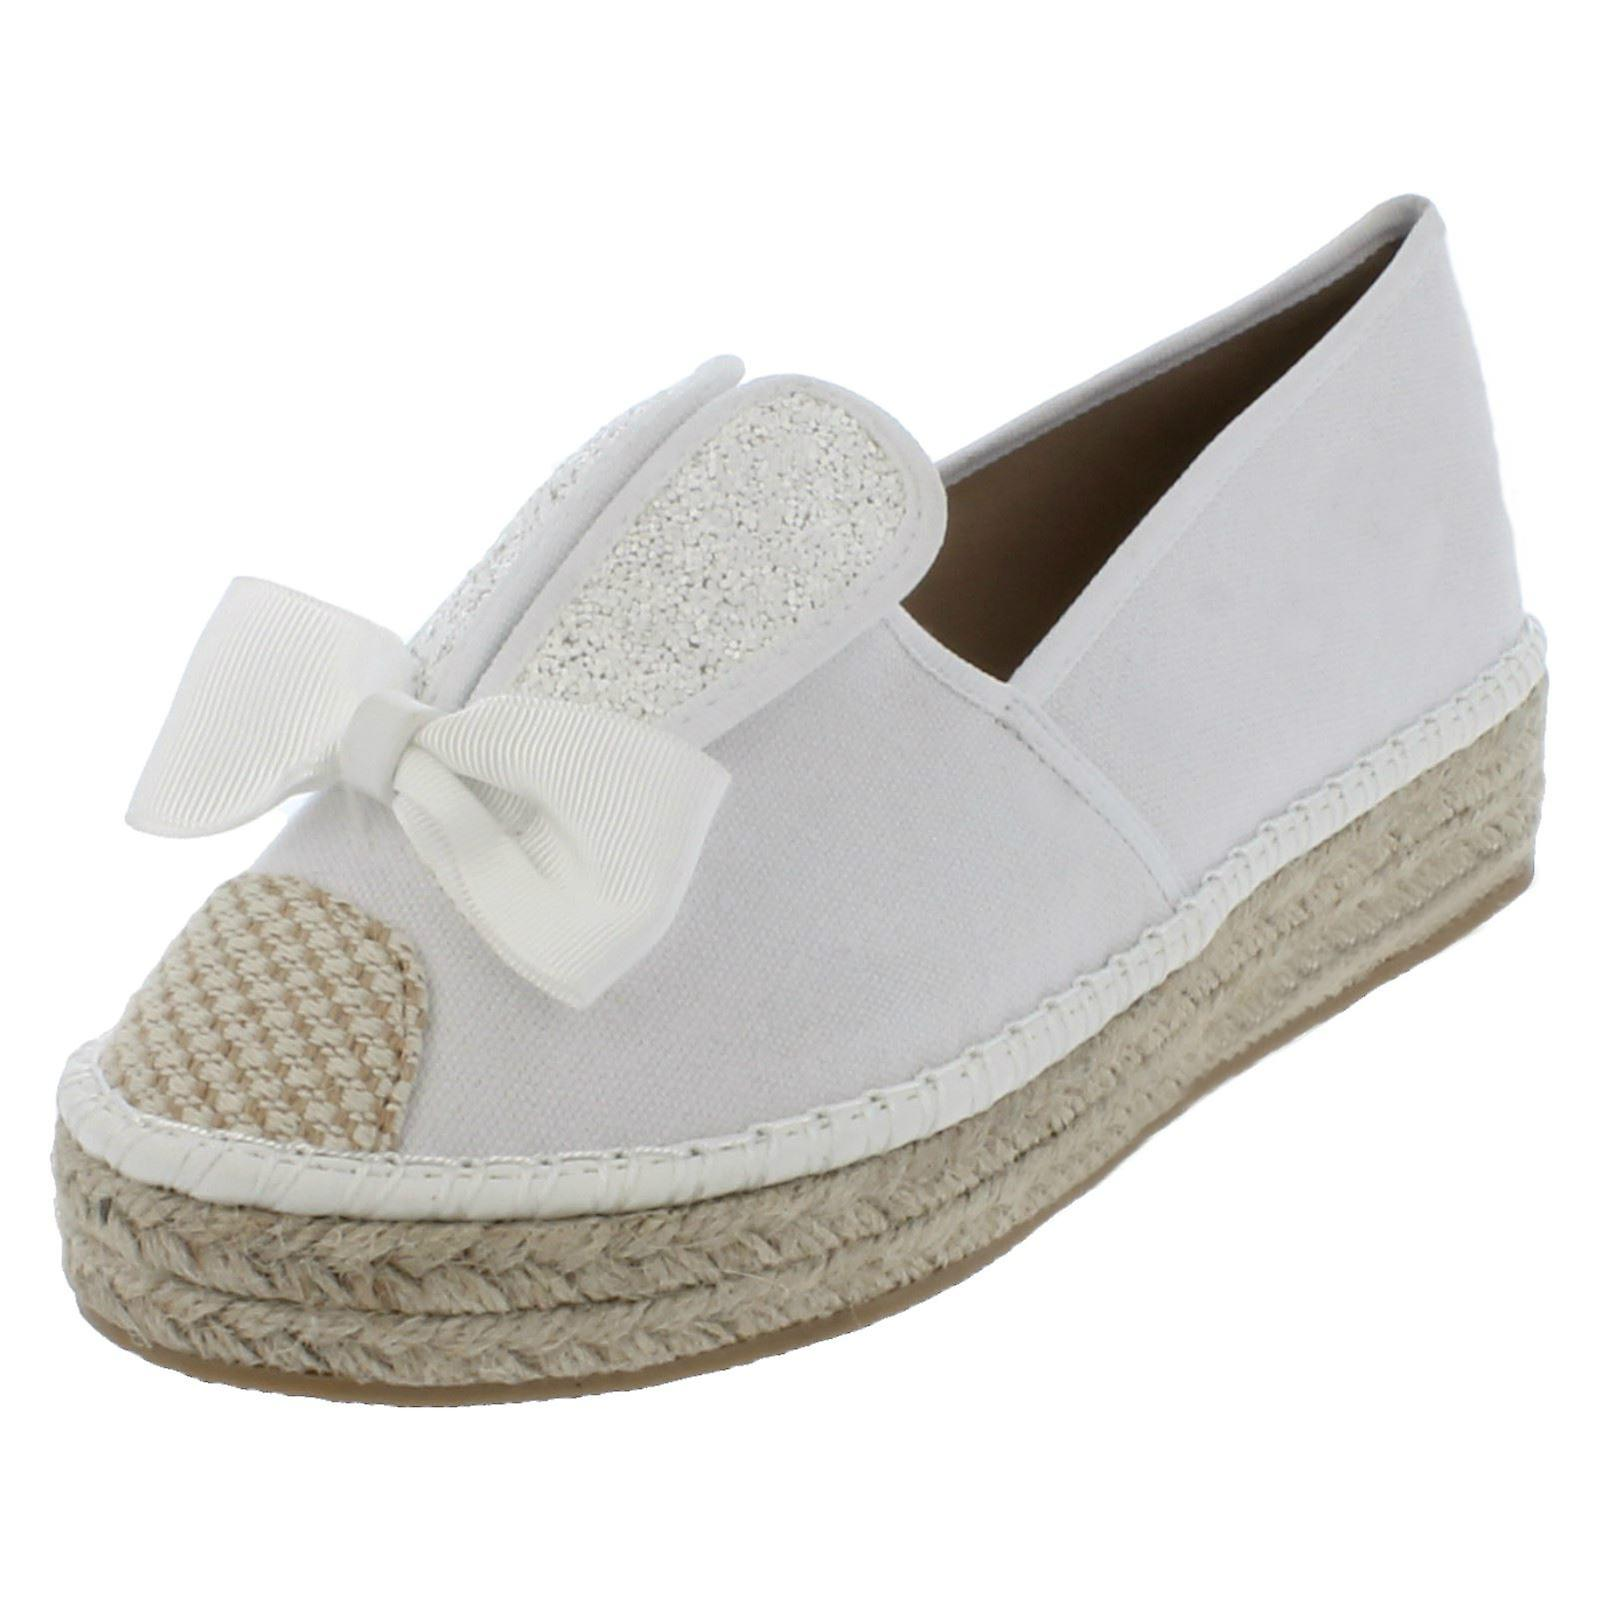 Ladies Spot Bunny On Bunny Spot Ears Canvas Shoes F9982:Man's/Woman's:variety bb8037